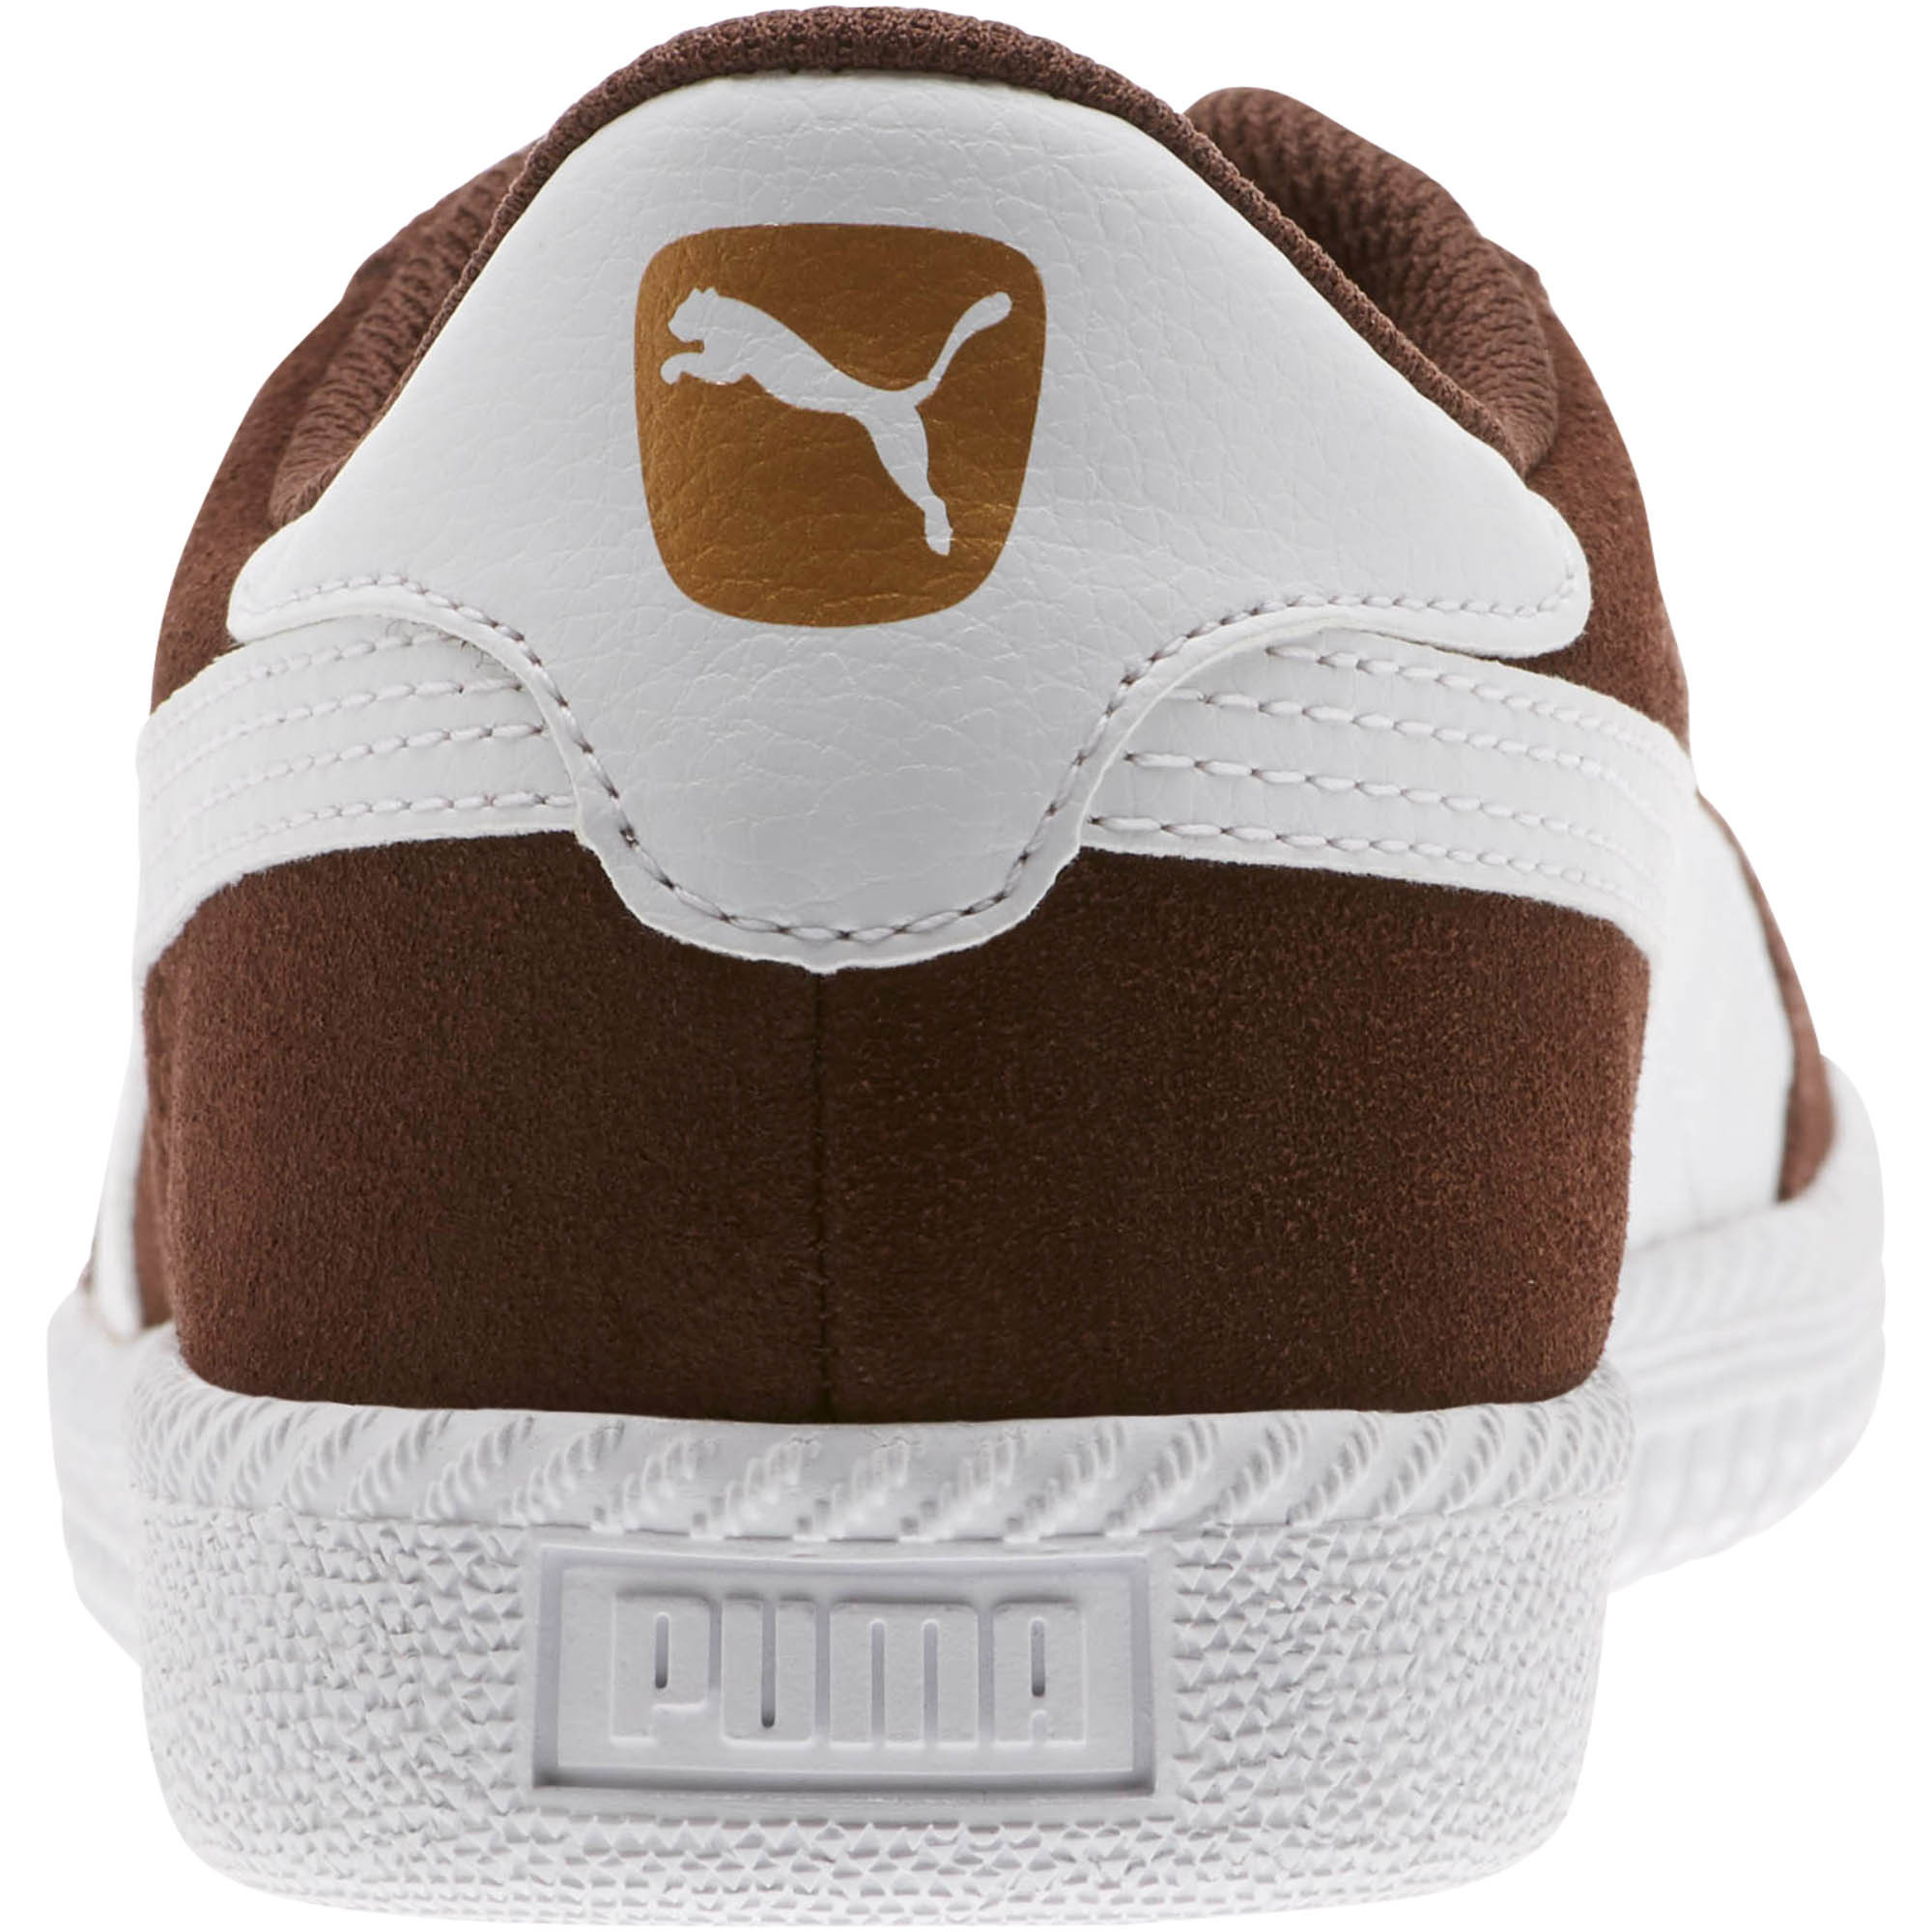 PUMA-Astro-Cup-Suede-Sneakers-Men-Shoe-Basics thumbnail 28